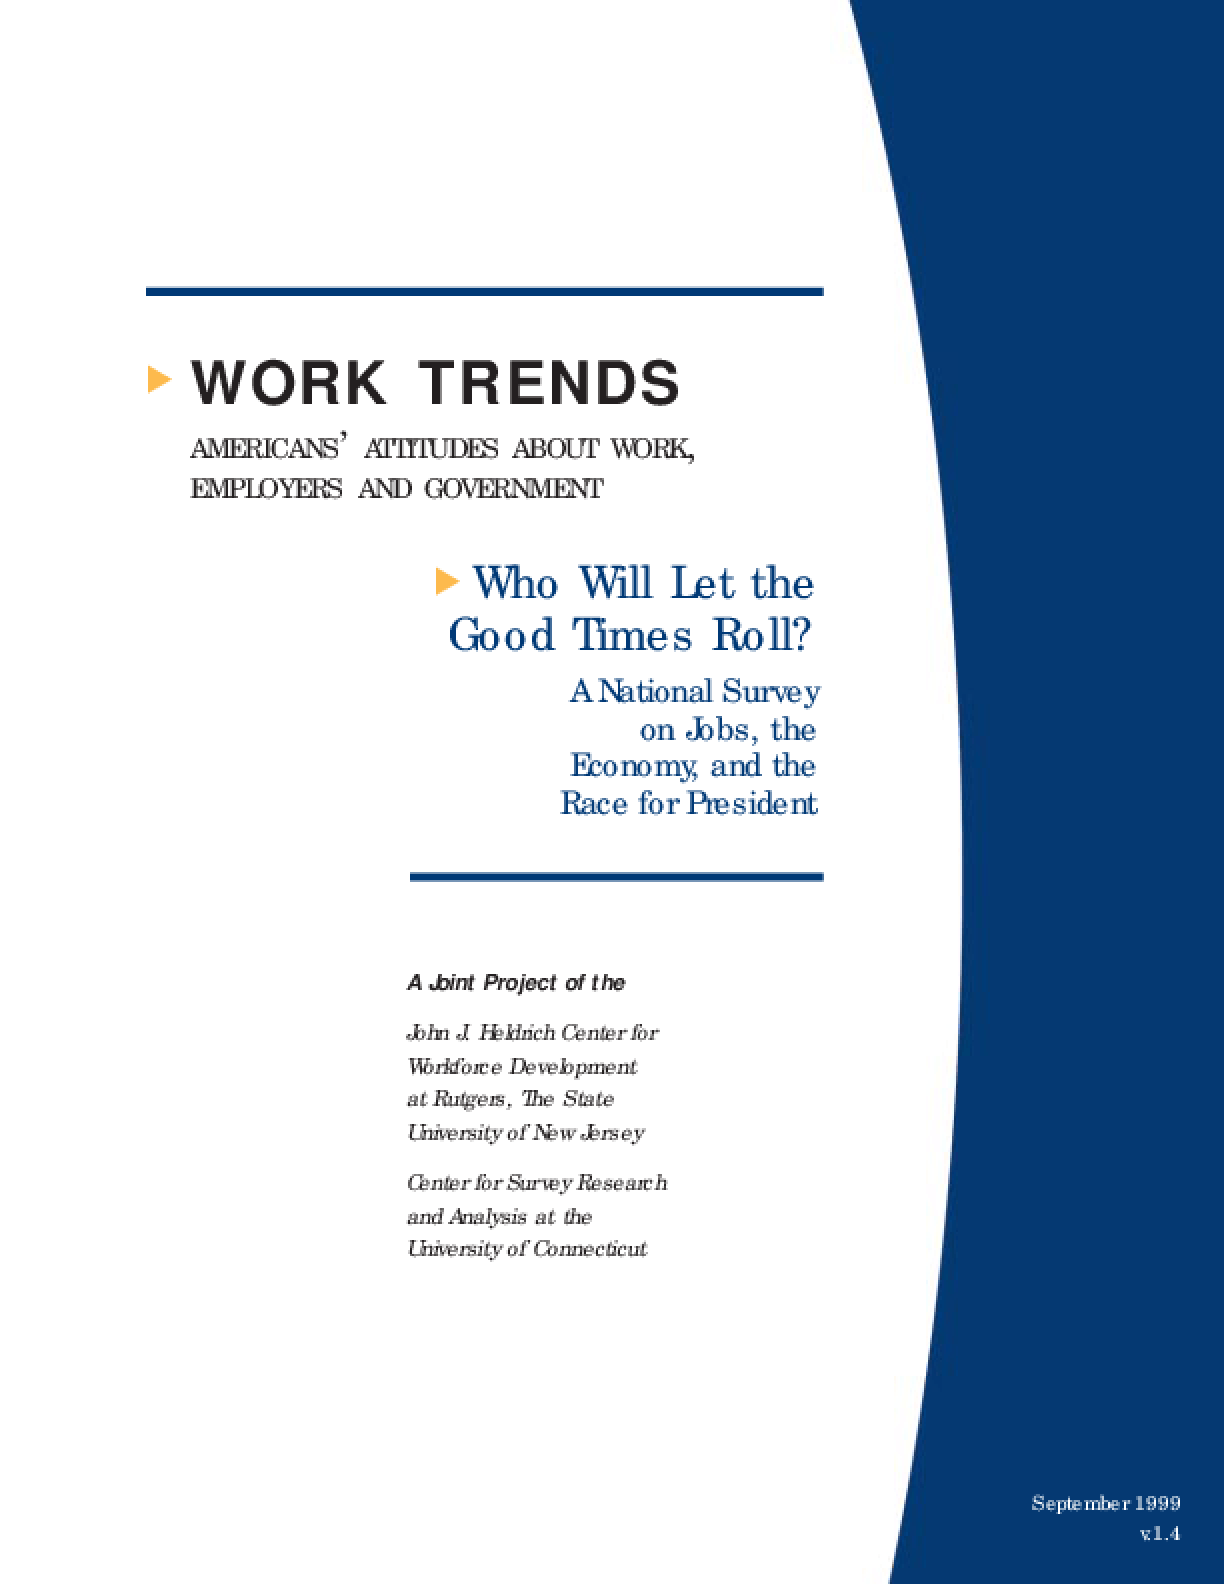 Who Will Let the Good Times Roll? A National Survey on Jobs, the Economy, and the Race for President